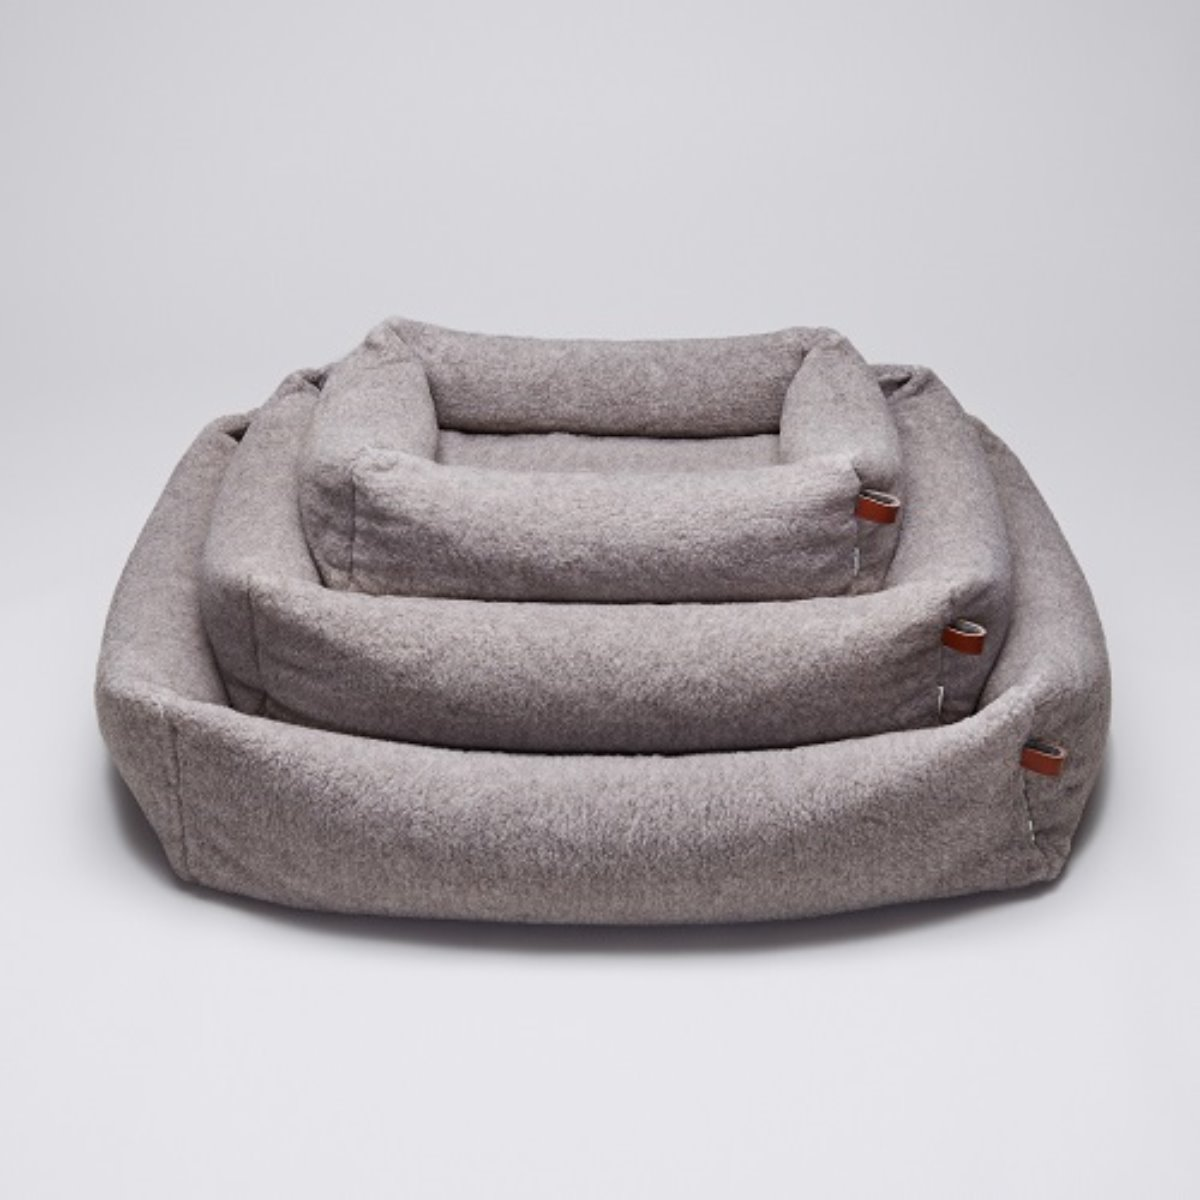 DOG BED SLEEPY DELUXE TEDDY